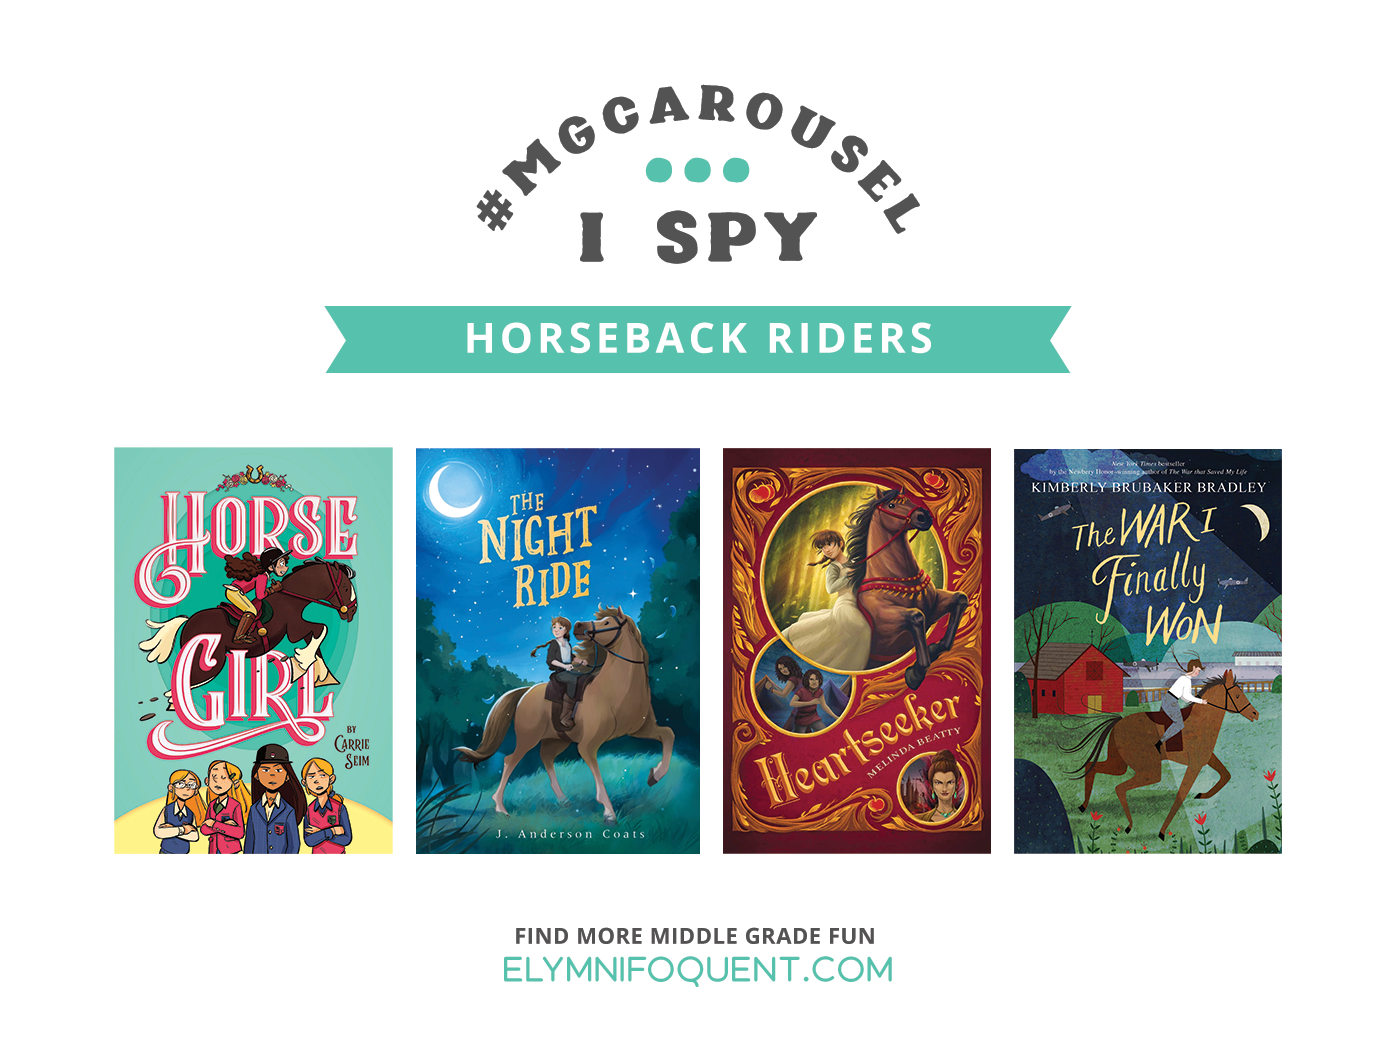 I SPY: Horseback Riders | Featuring HORSE GIRL by Carrie Seim; THE NIGHT RIDE by J. Anderson Coats; HEARTSEEKER by Melinda Beatty; and THE WAR I FINALLY WON by Kimberly BRUBAKER BRADLEY